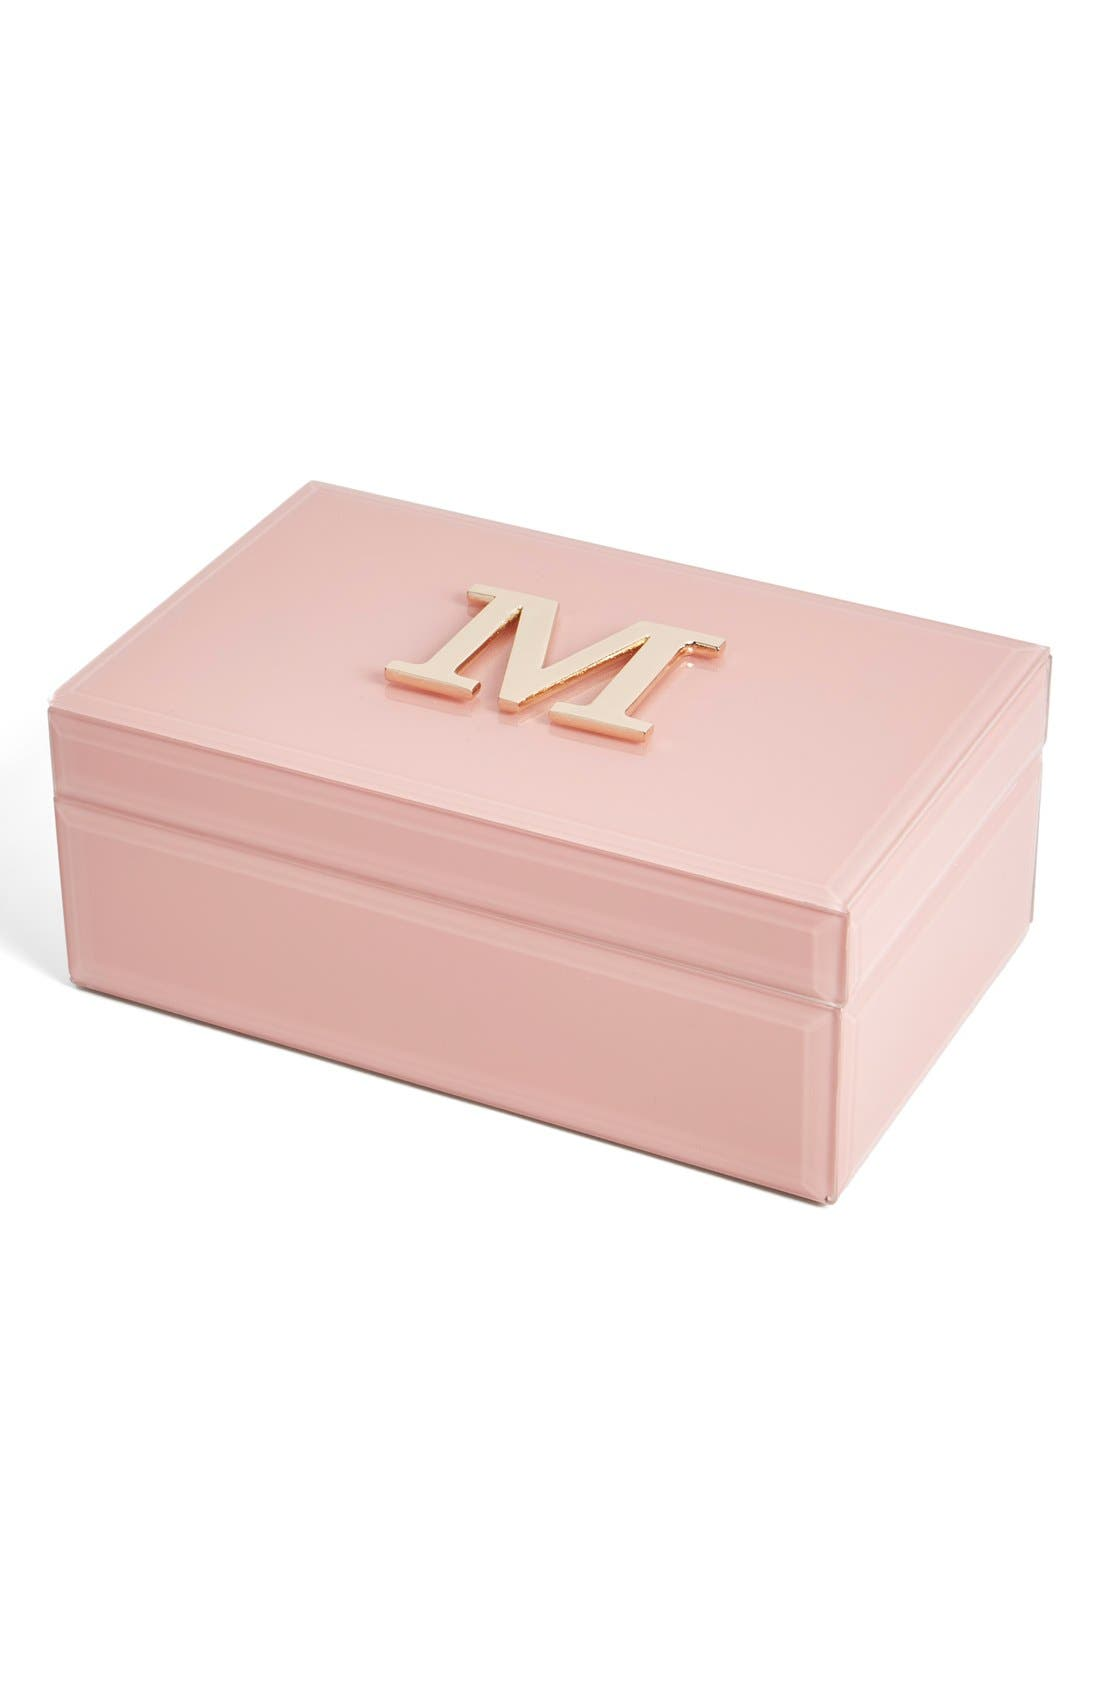 Monogram Jewelry Box,                             Main thumbnail 1, color,                             Rose - M